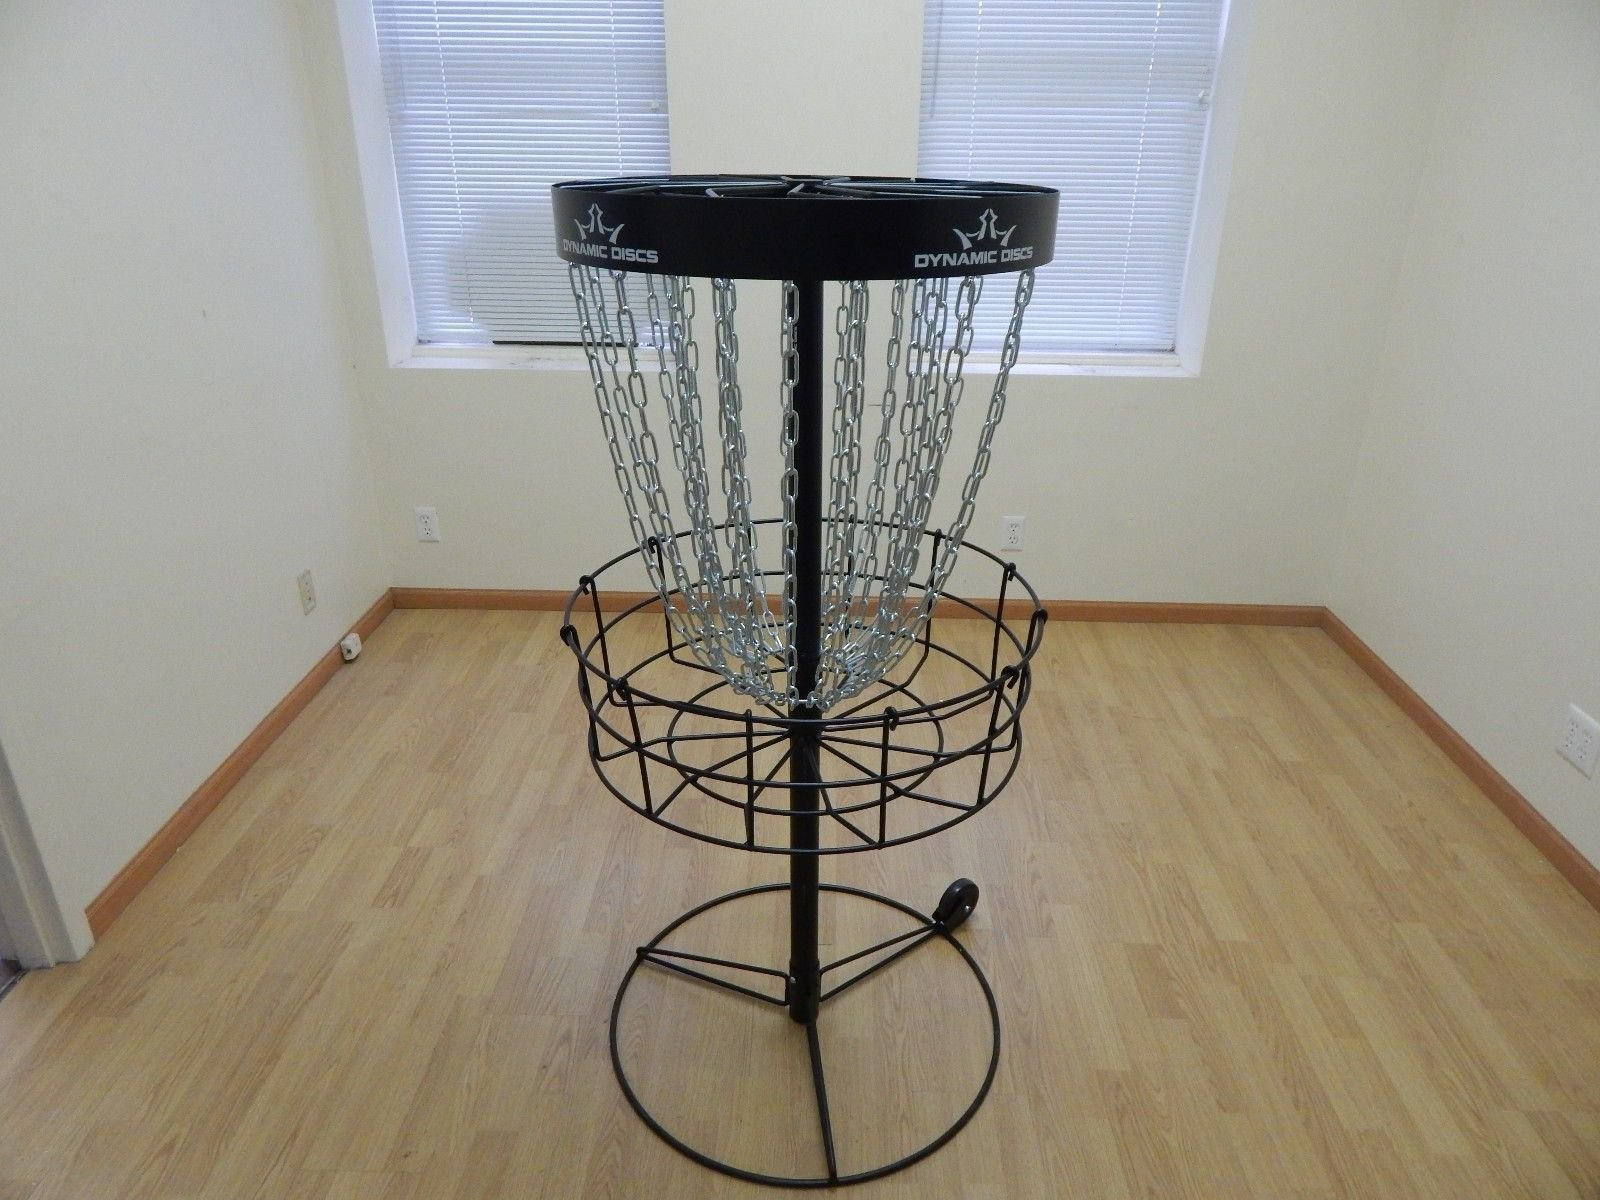 Dynamic Discs Recruit Basket by Dynamic Discs